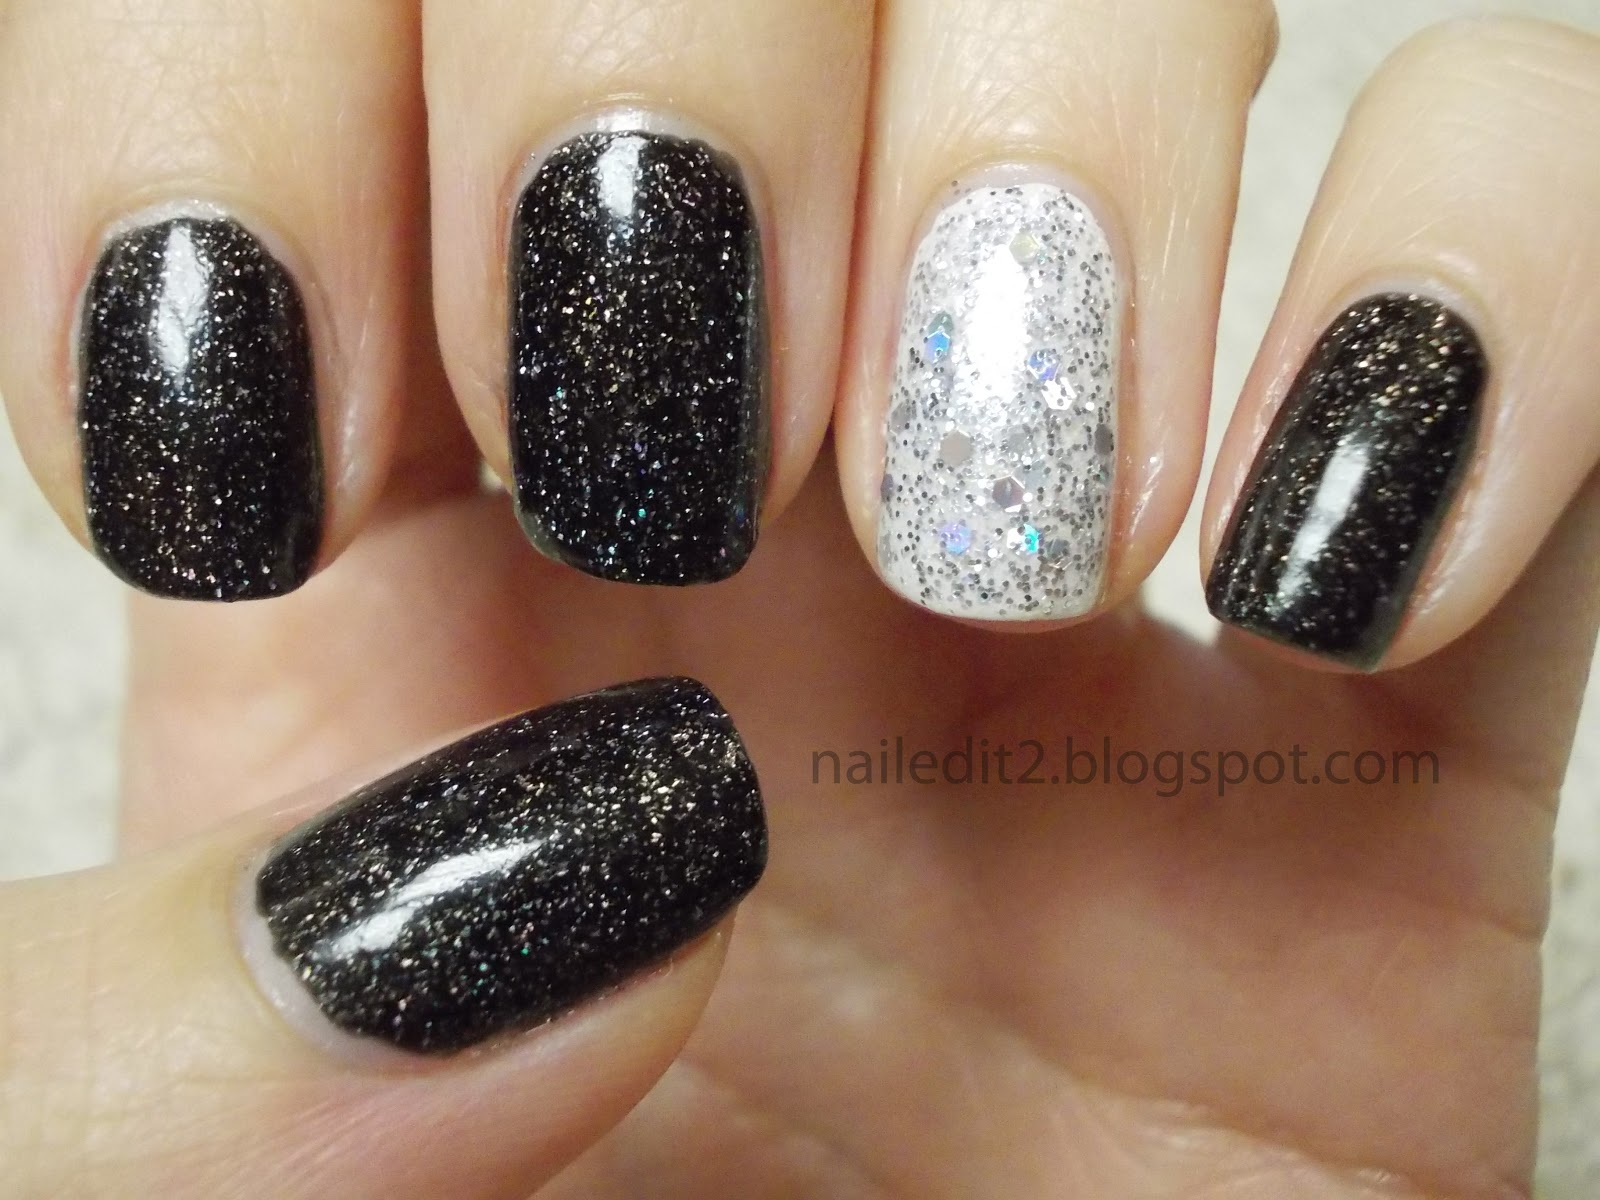 Never Gonna Give You Up: New Years Eve Nails!